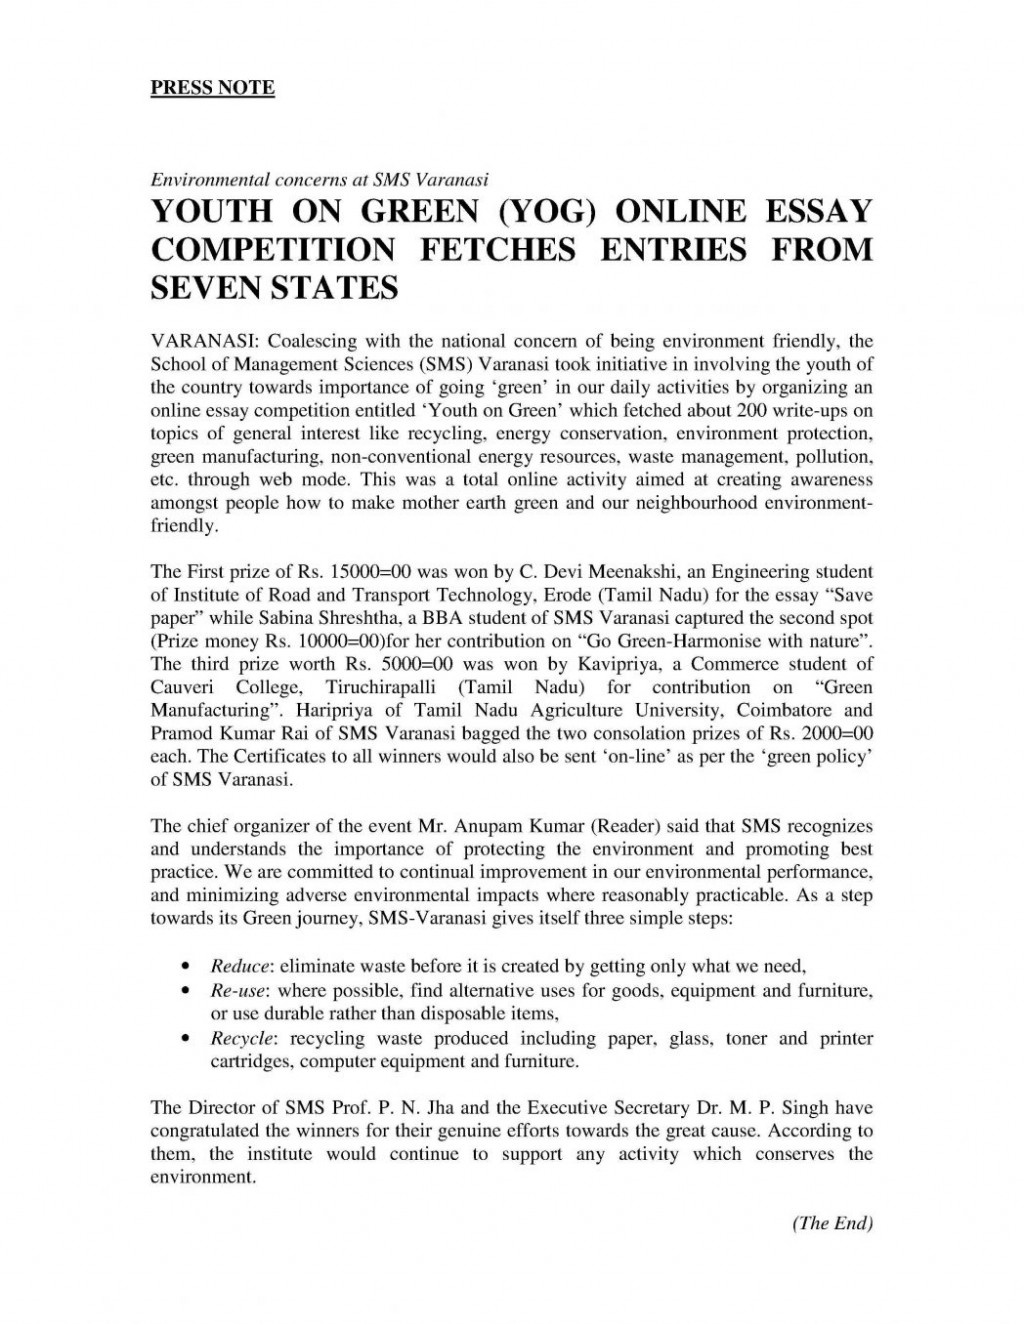 006 Amusing Ourselves To Death Essay Good Habits Online Essays Yog Press Re Ftce Examples Gkt 1048x1356 Example Unbelievable Sample English 6-12 Samples Practice Large